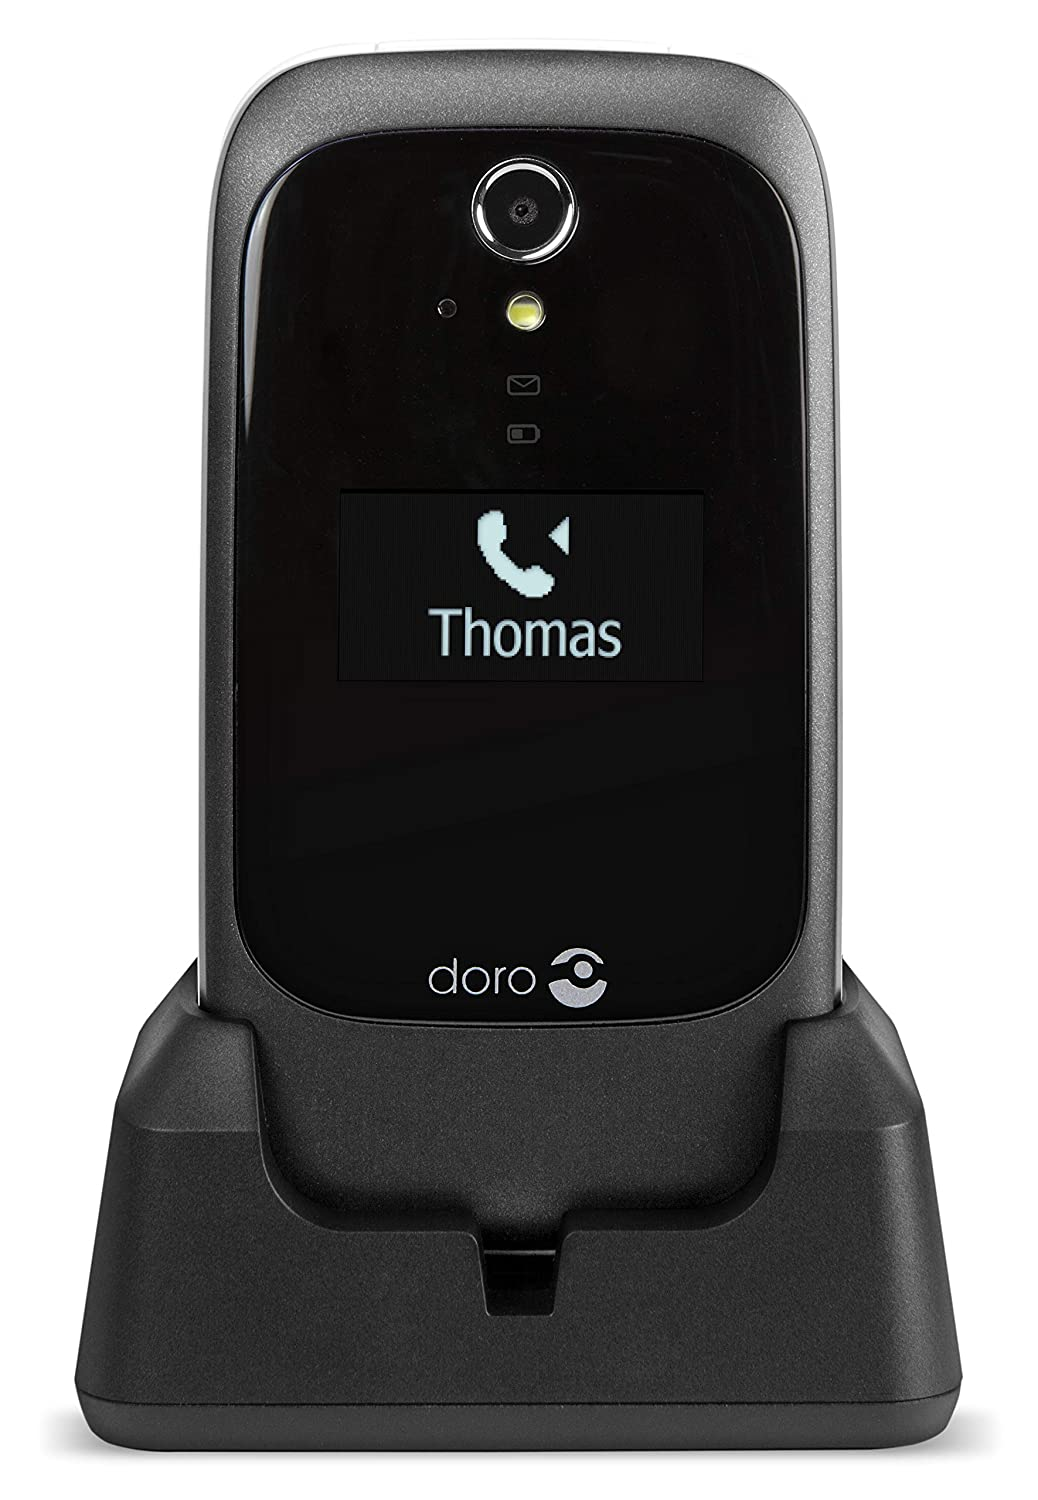 Doro 6530 Easy-to-Use Unlocked Feature Phone for 3G Networks with External  Display, GPS combined with SOS Button and Charging Cradle Included